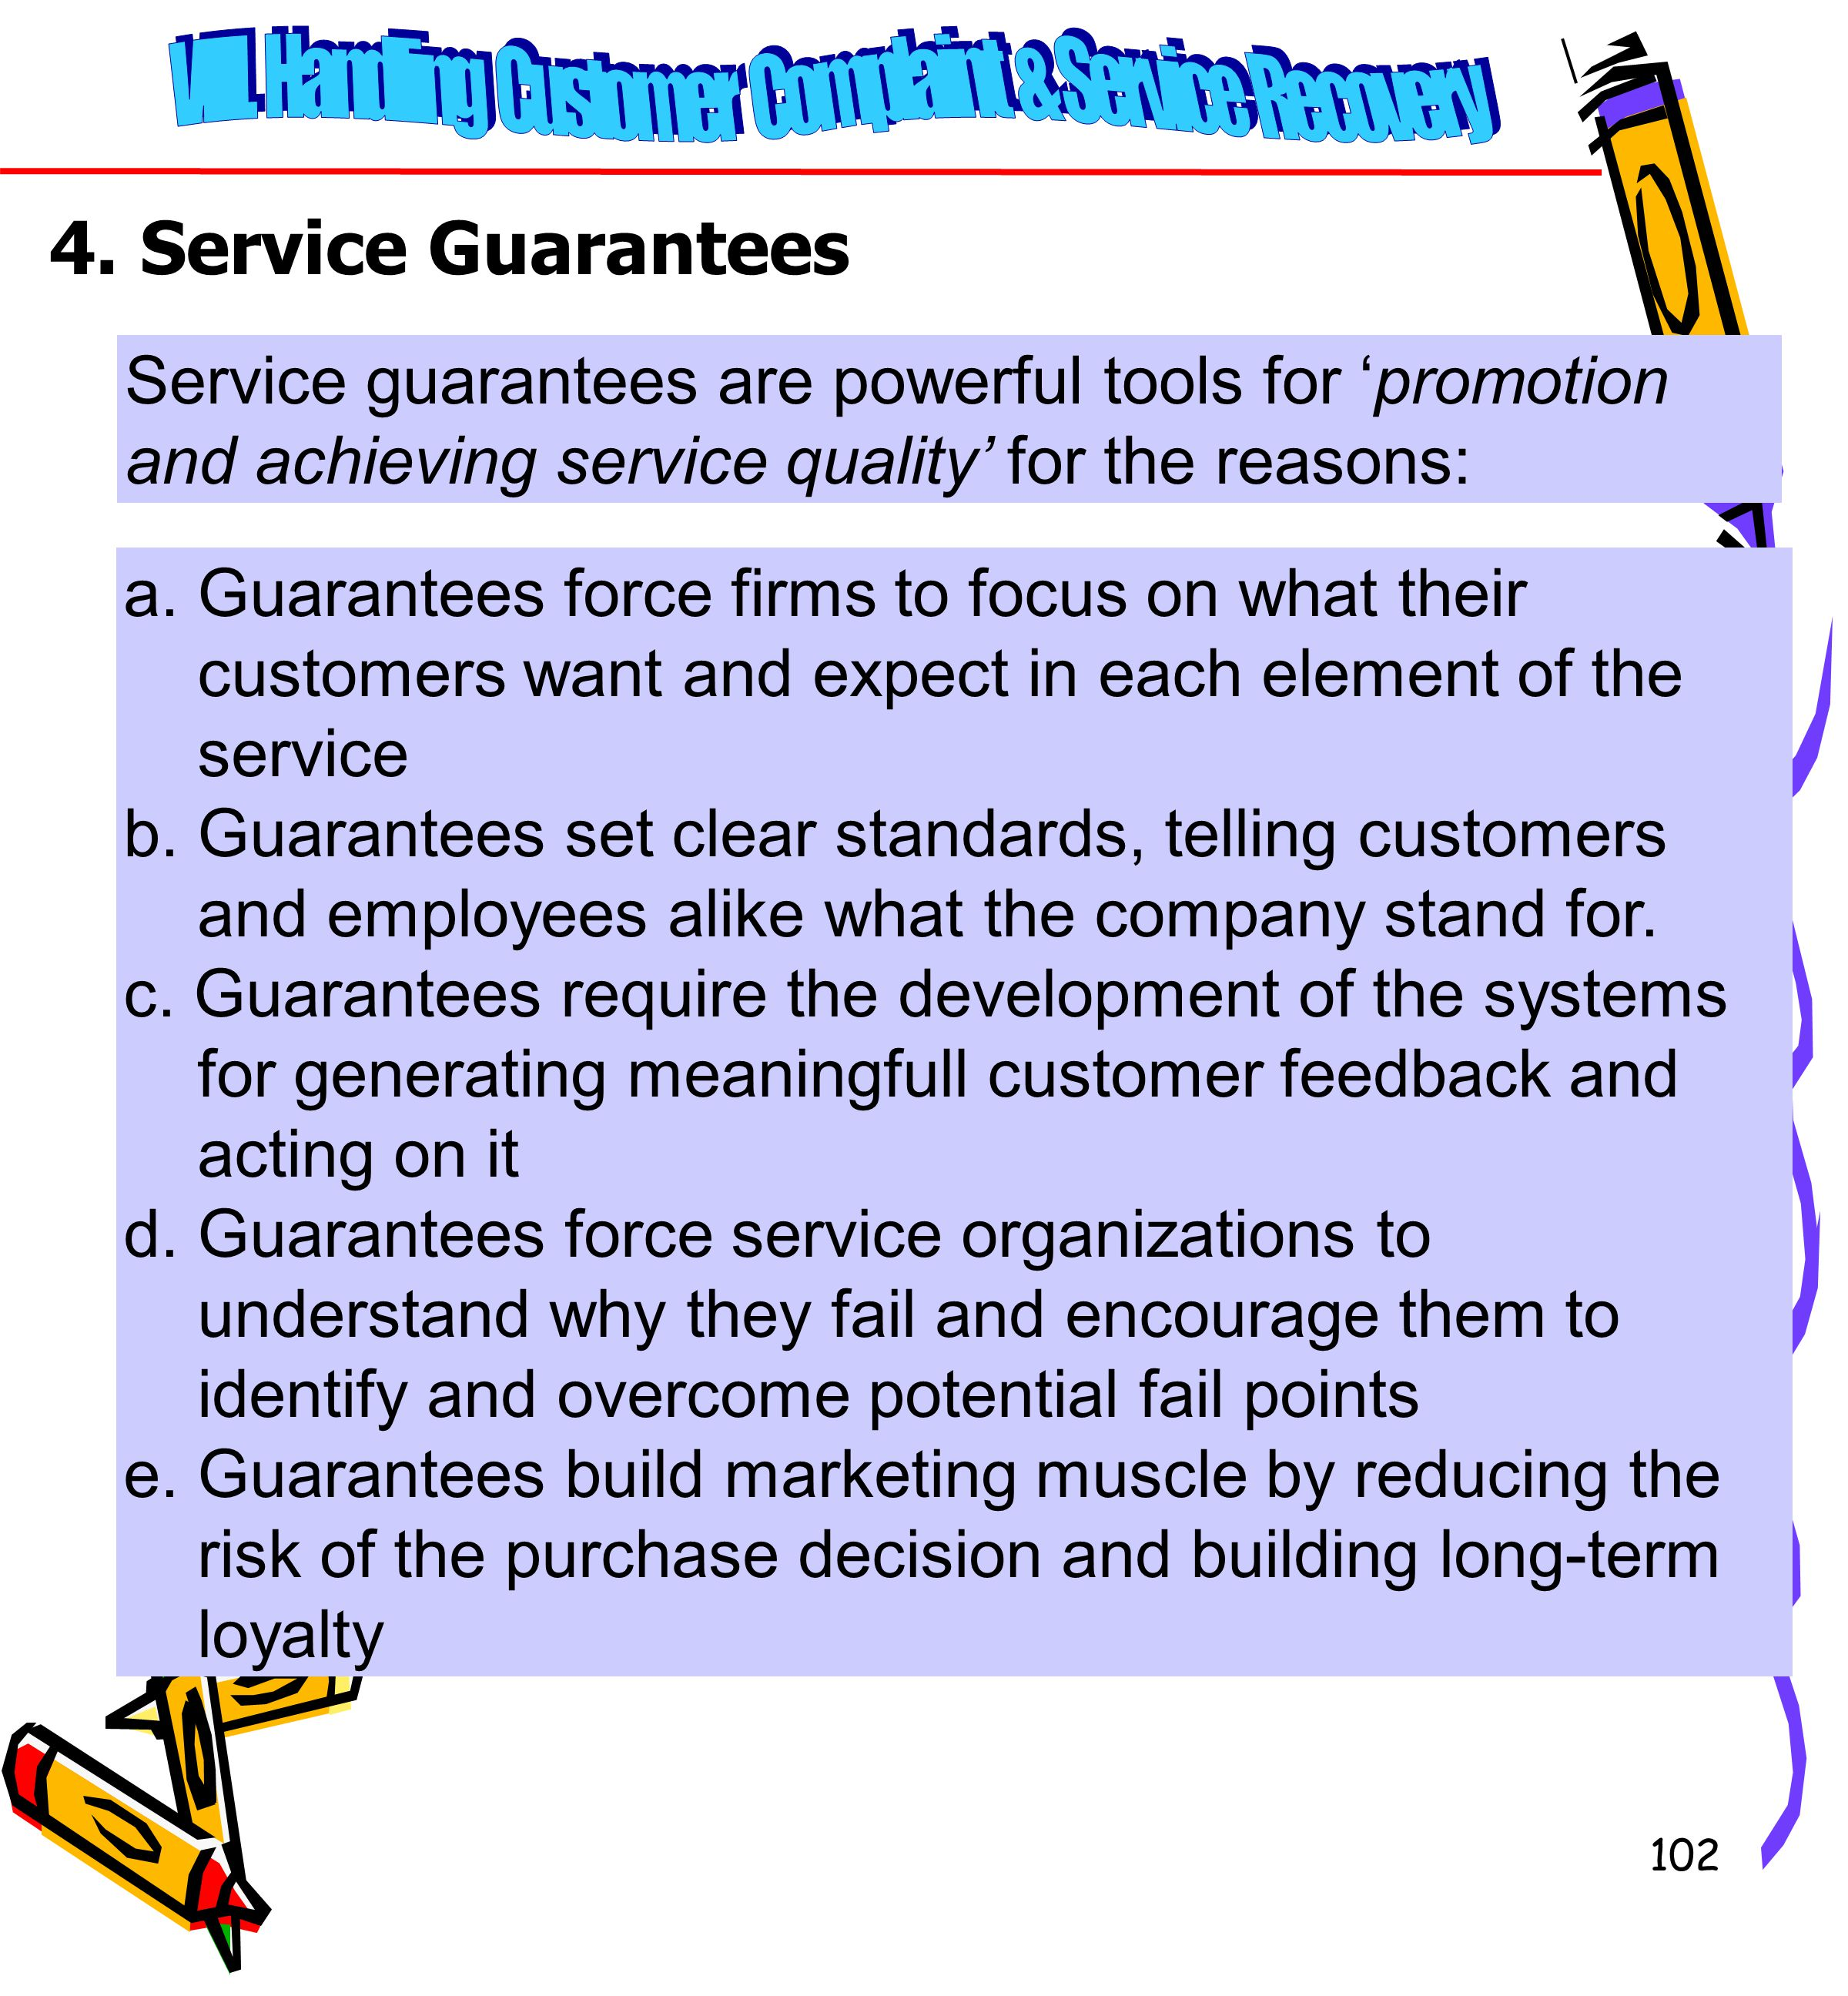 VIII. Handling Customer Complaint & Service Recovery